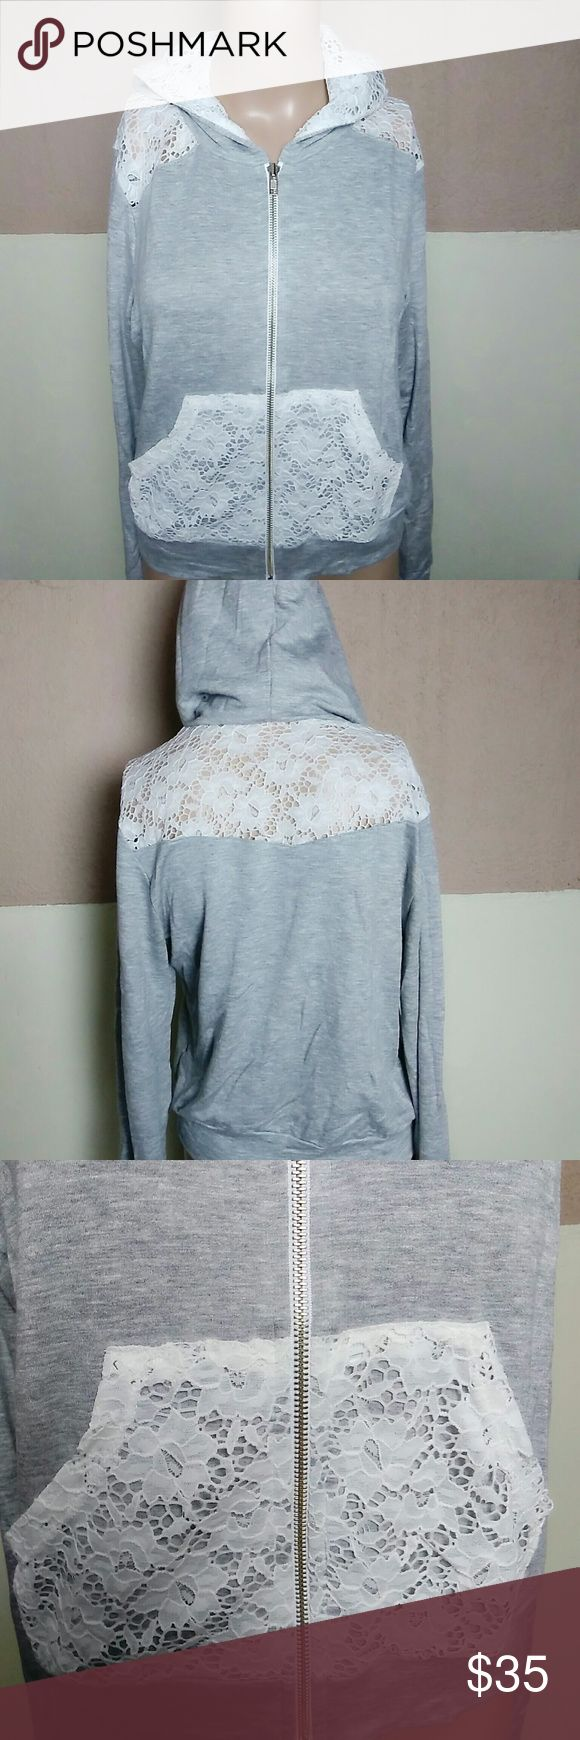 """Gray White Lace Hooded Zip Up Shirt This is like a hoodie, but it is thin. Chest armpit to armpit is 18"""" Length 18"""" Measurements are approximate. This is brand new from my vendor but it does not come with tags. Saga Tops"""